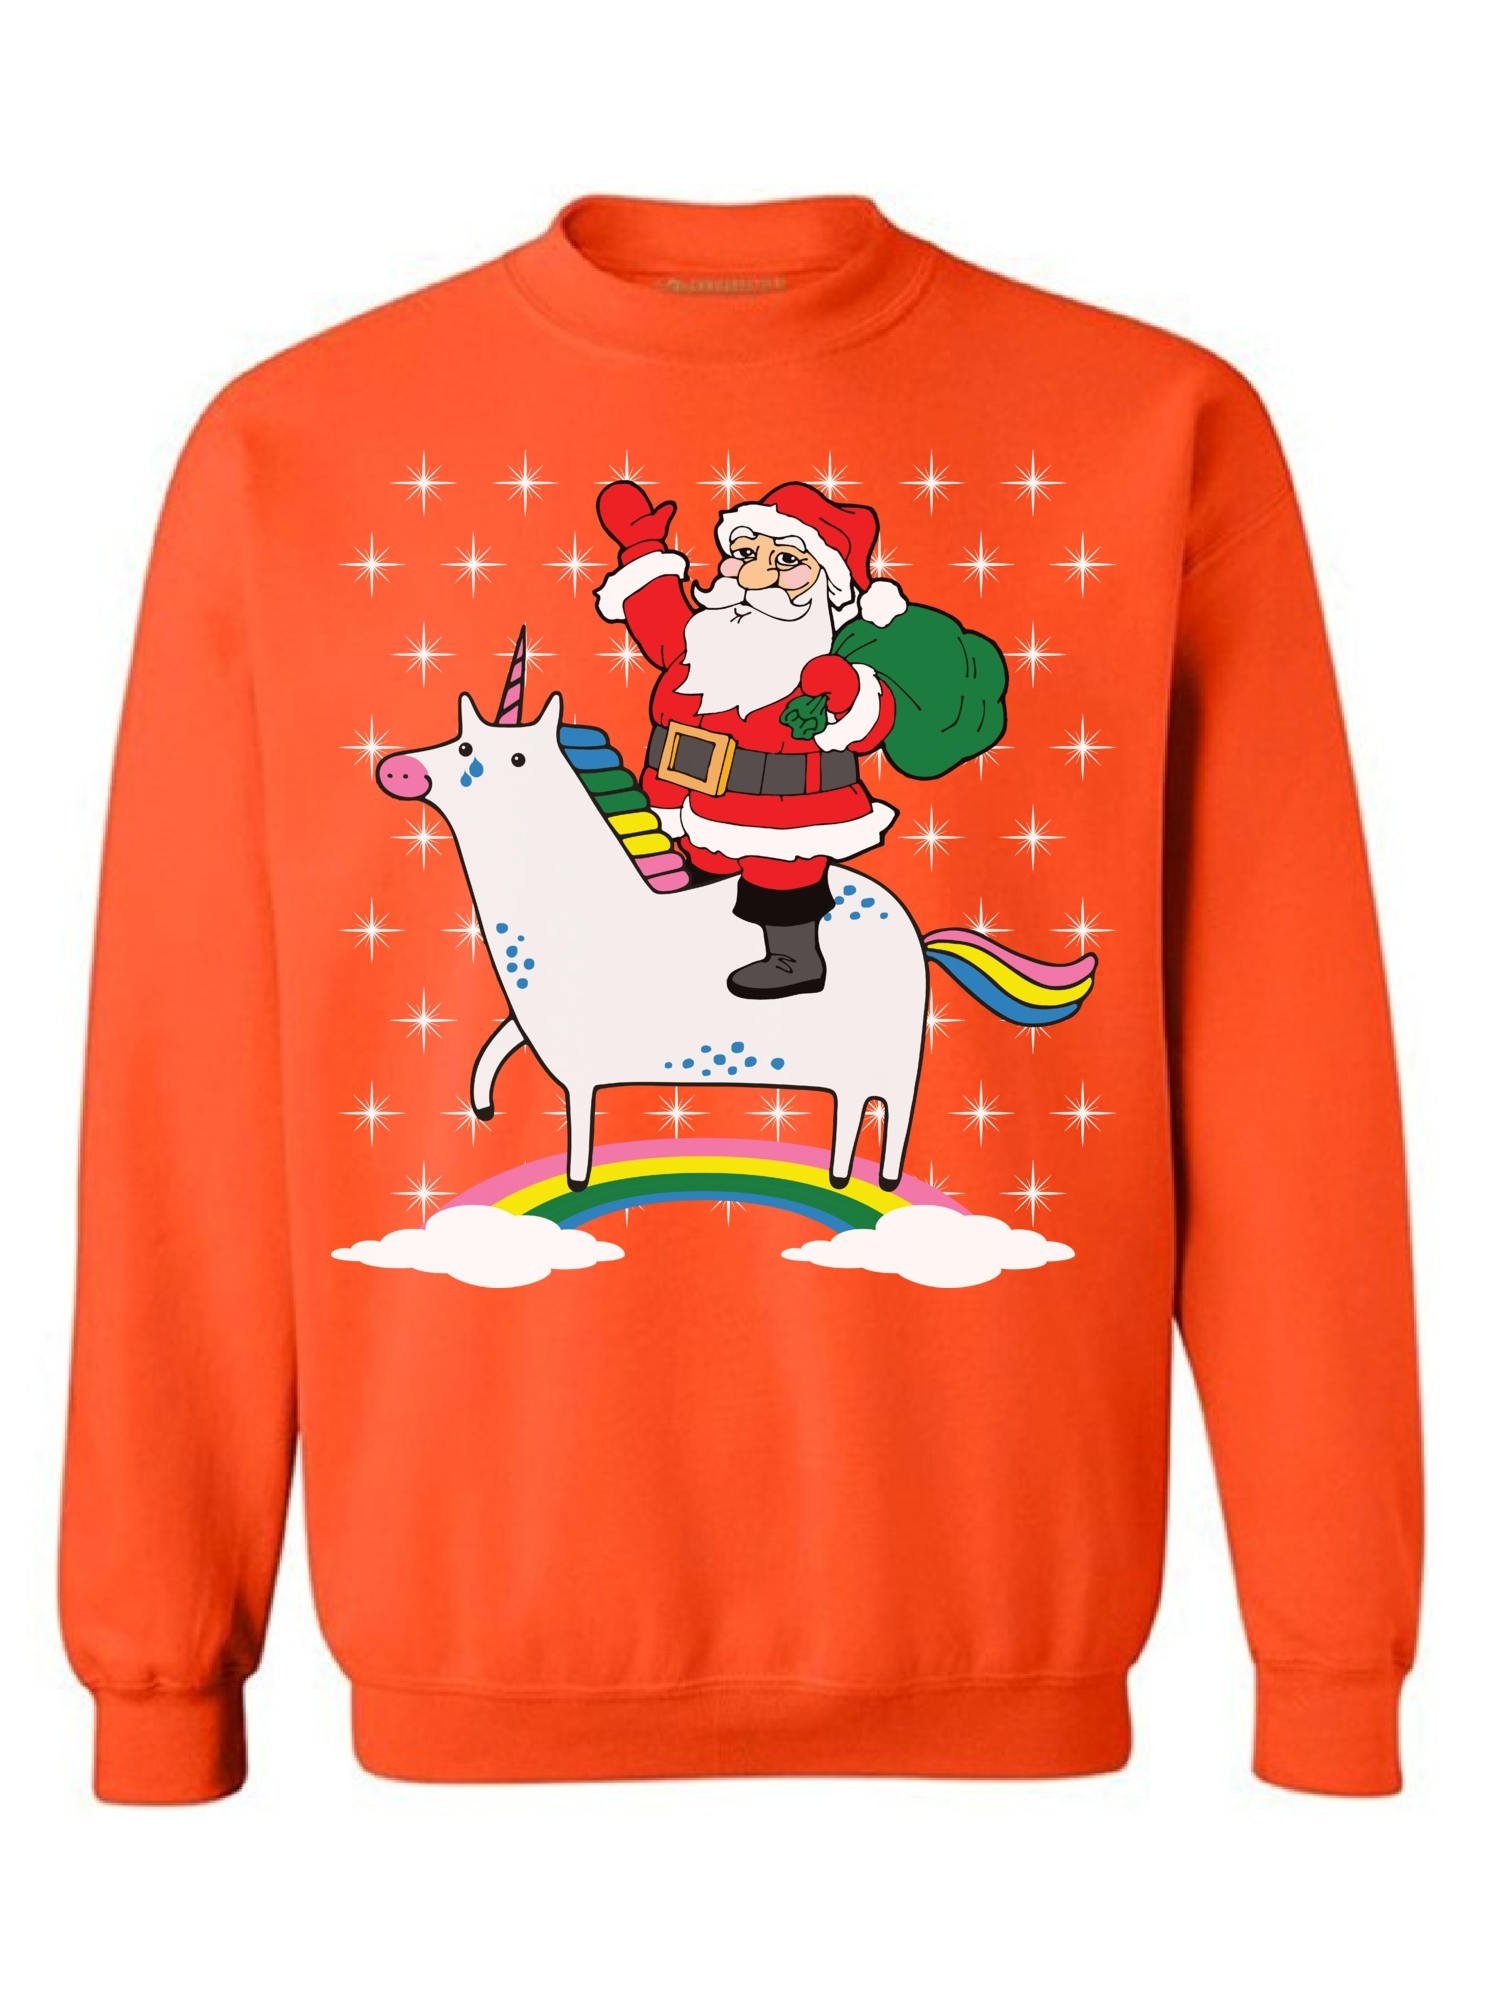 Awkward Styles Unicorn Santa Sweatshirt Cute Unicorn Santa Ugly Christmas Sweater for Women Xmas Unicorn Sweatshirt Funny Christmas Sweaters Christmas Rainbow Gifts for Unicorn Lovers Santa Sweater